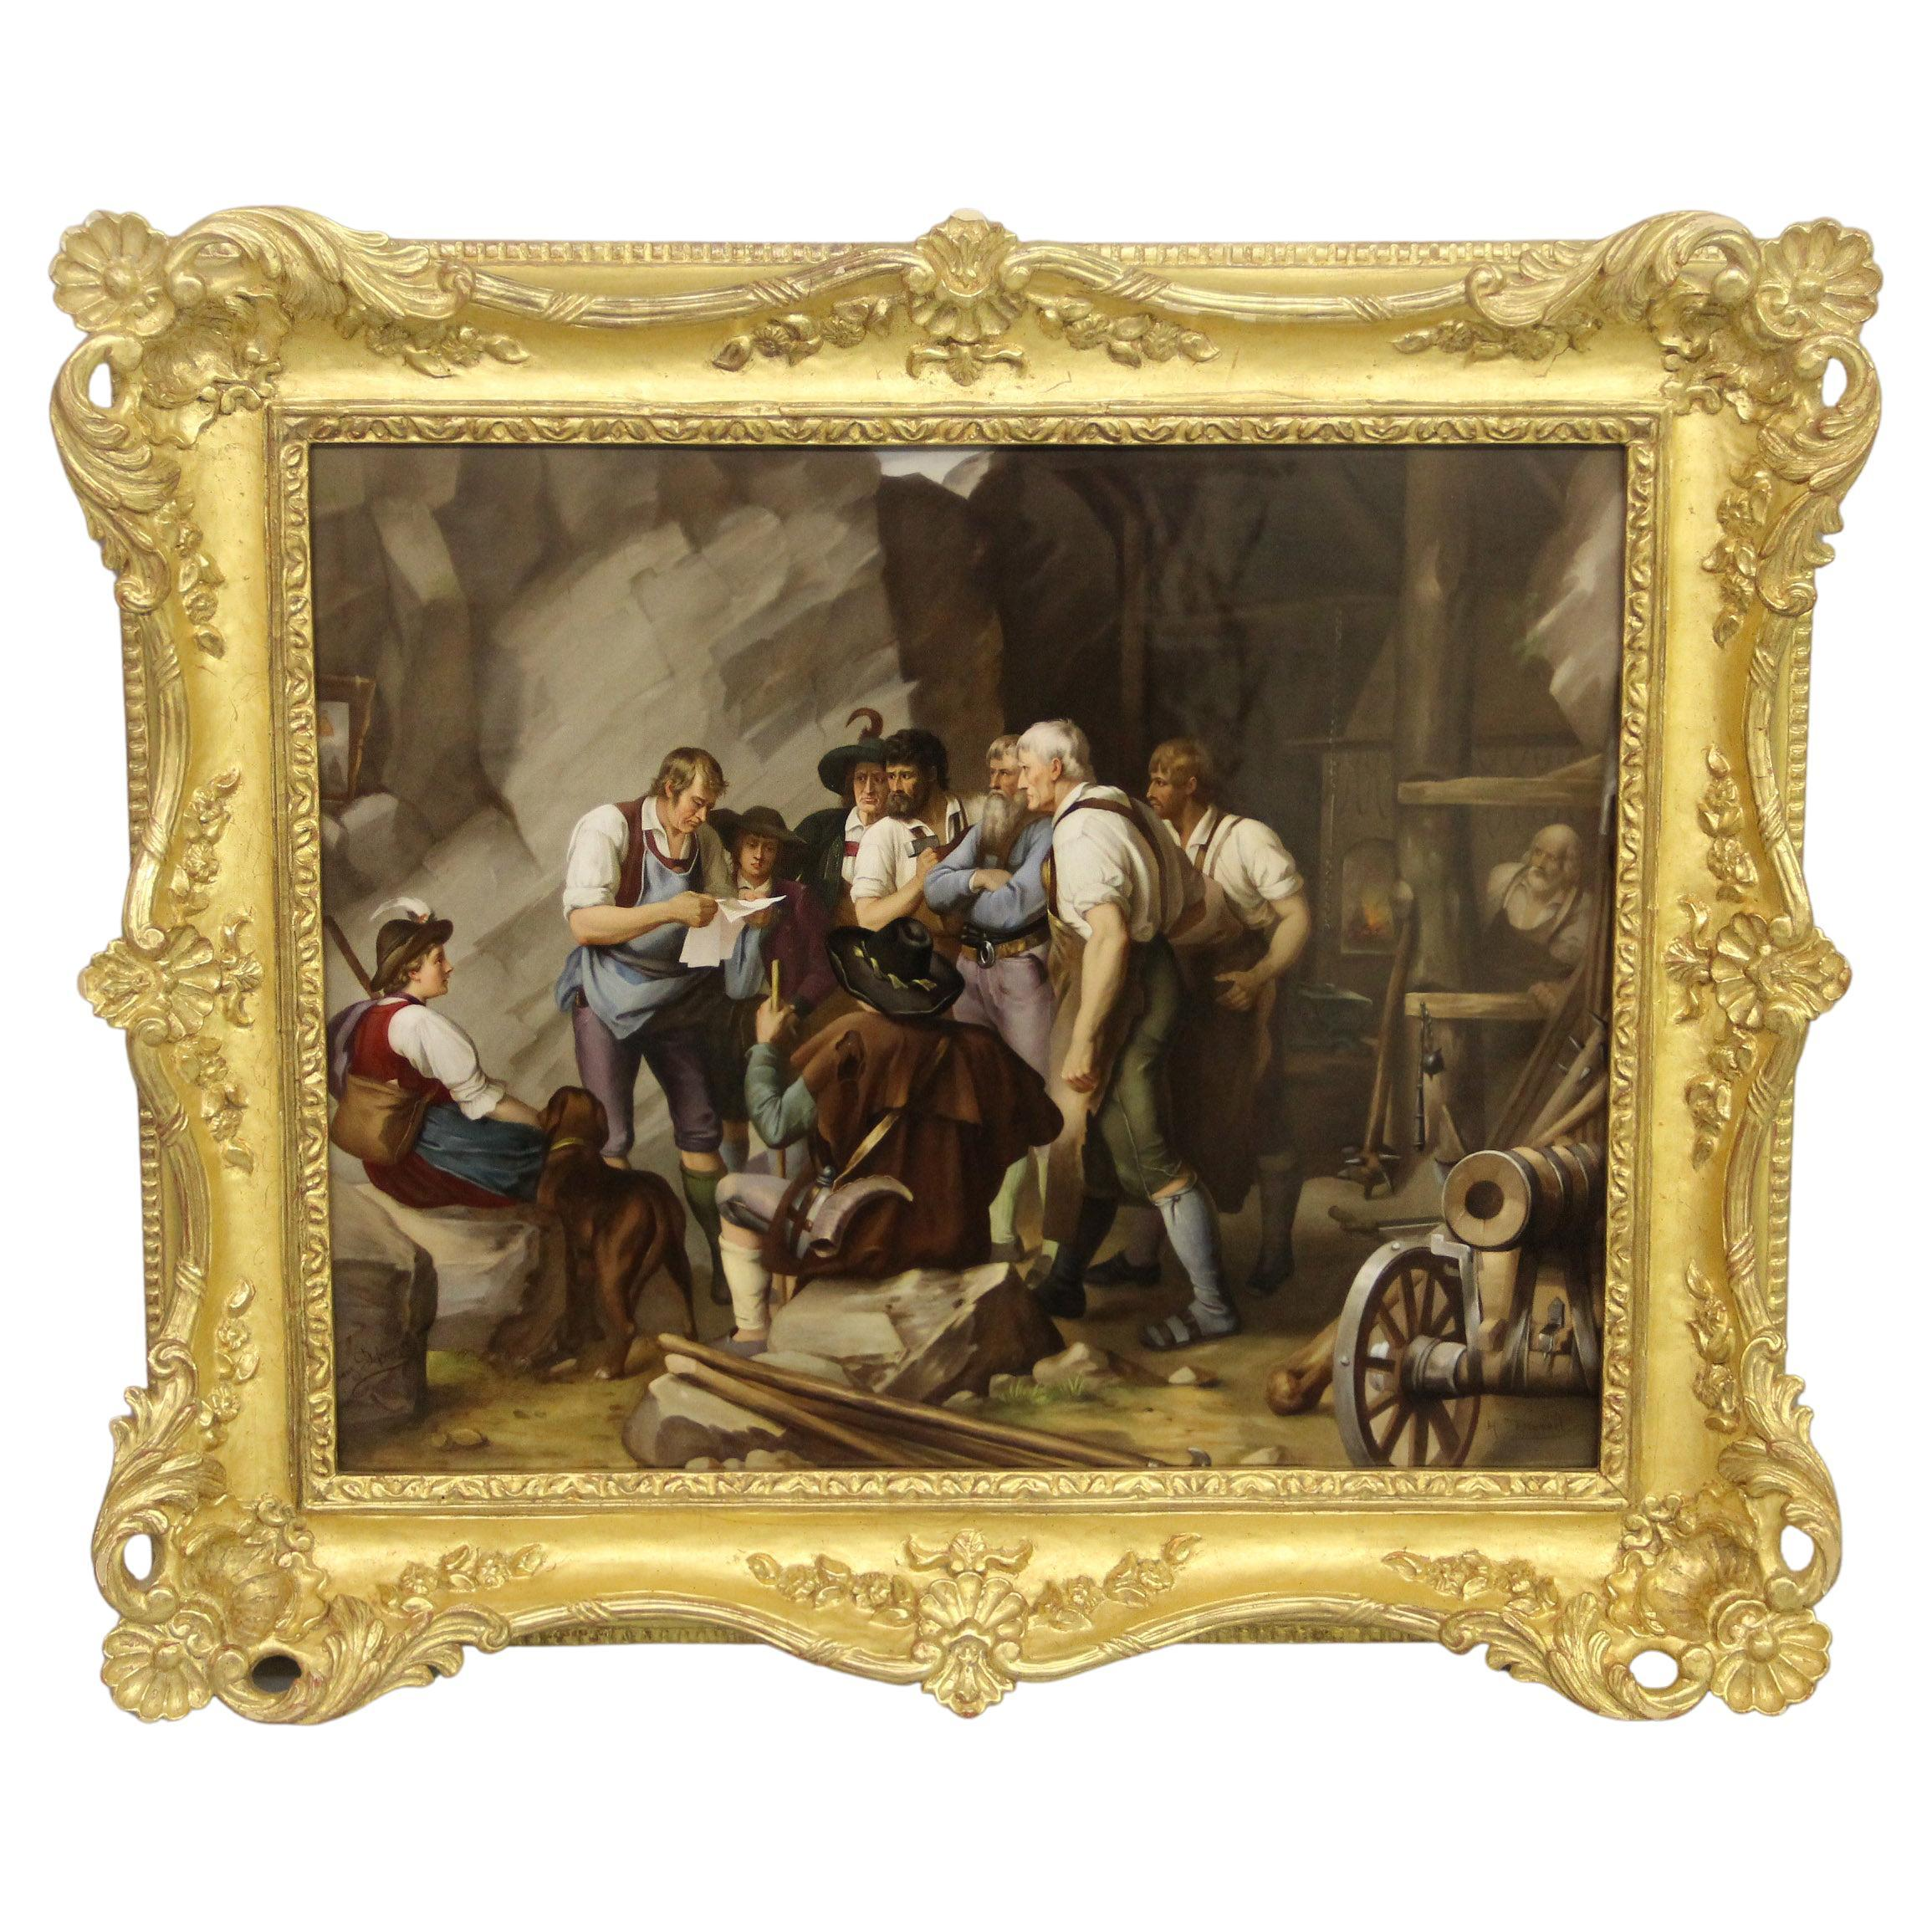 Palatial and Very Impressive Late 19th Century Berlin K.P.M. Porcelain Plaque